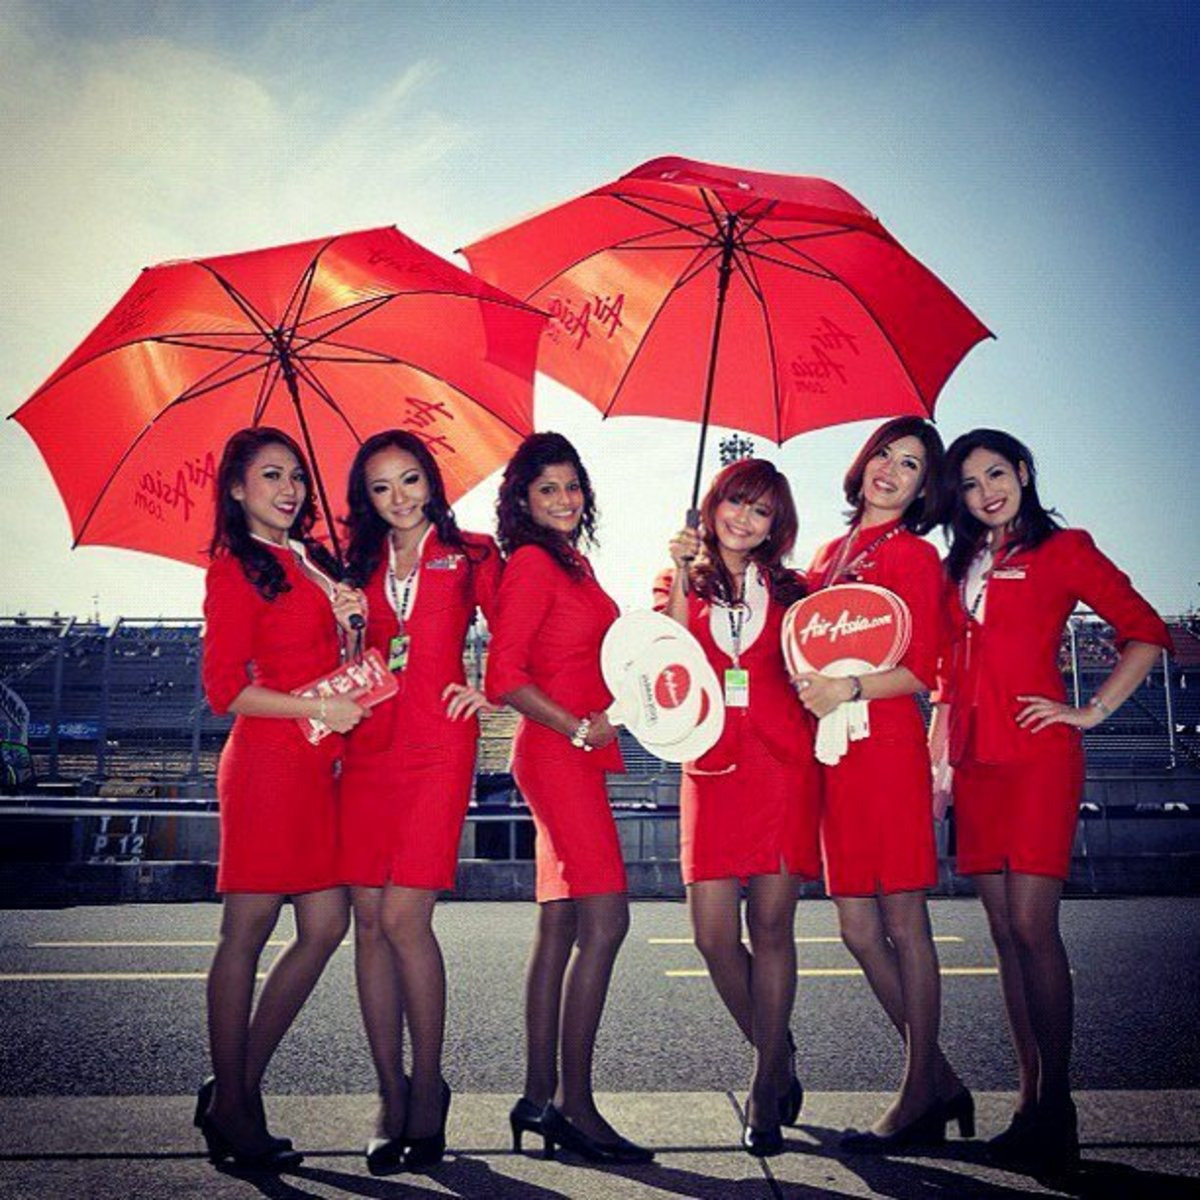 Top Asian Airlines Flight Attendant Uniforms - Glamourous or Functional?